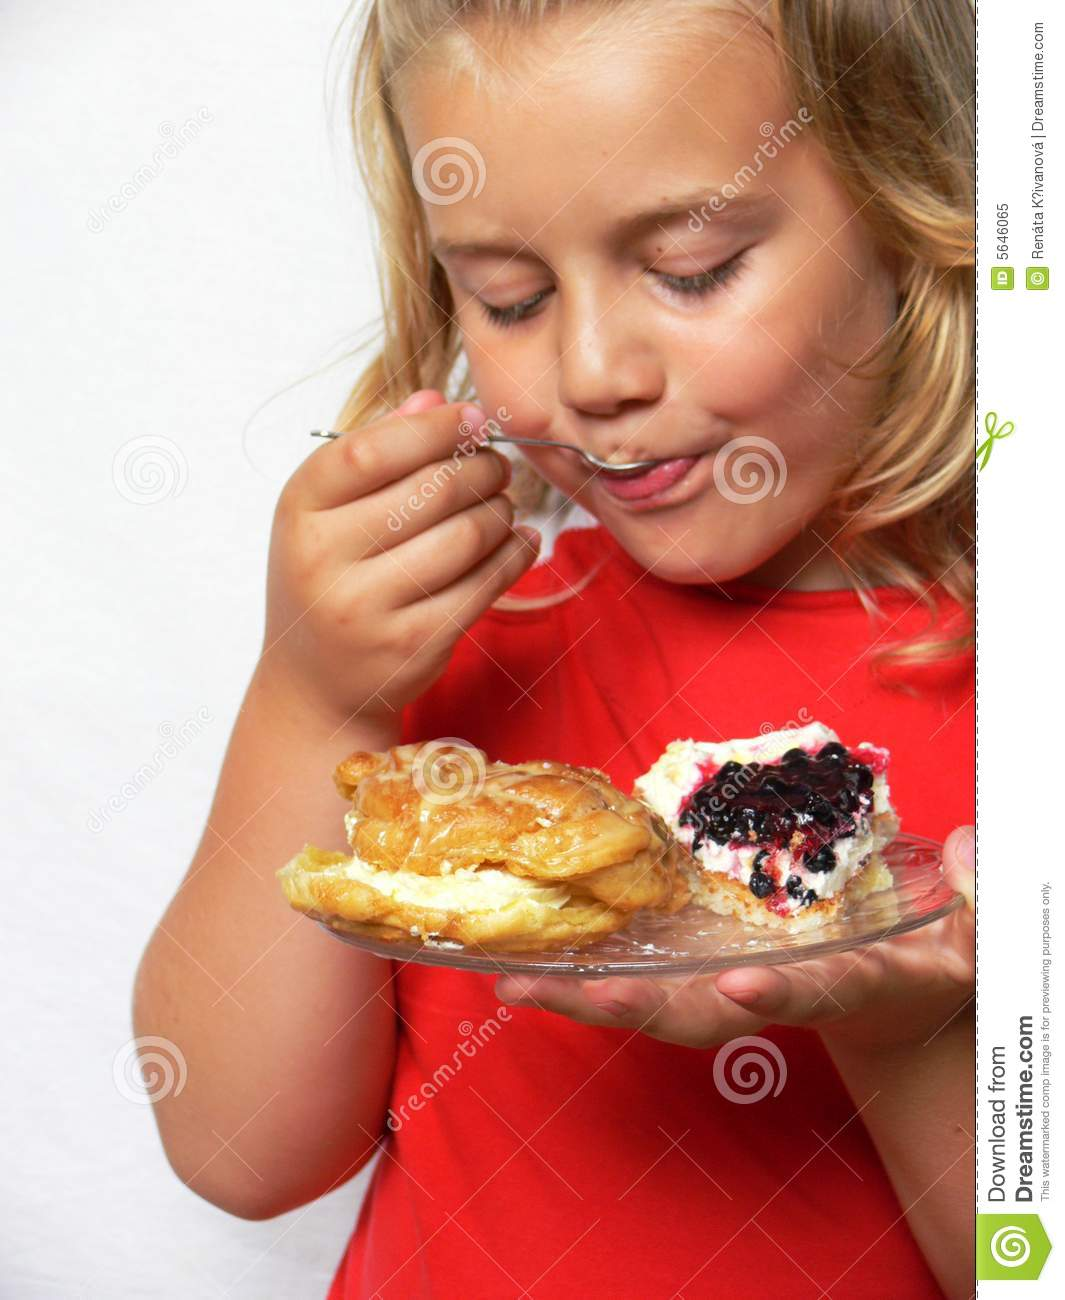 Child is eating sweets